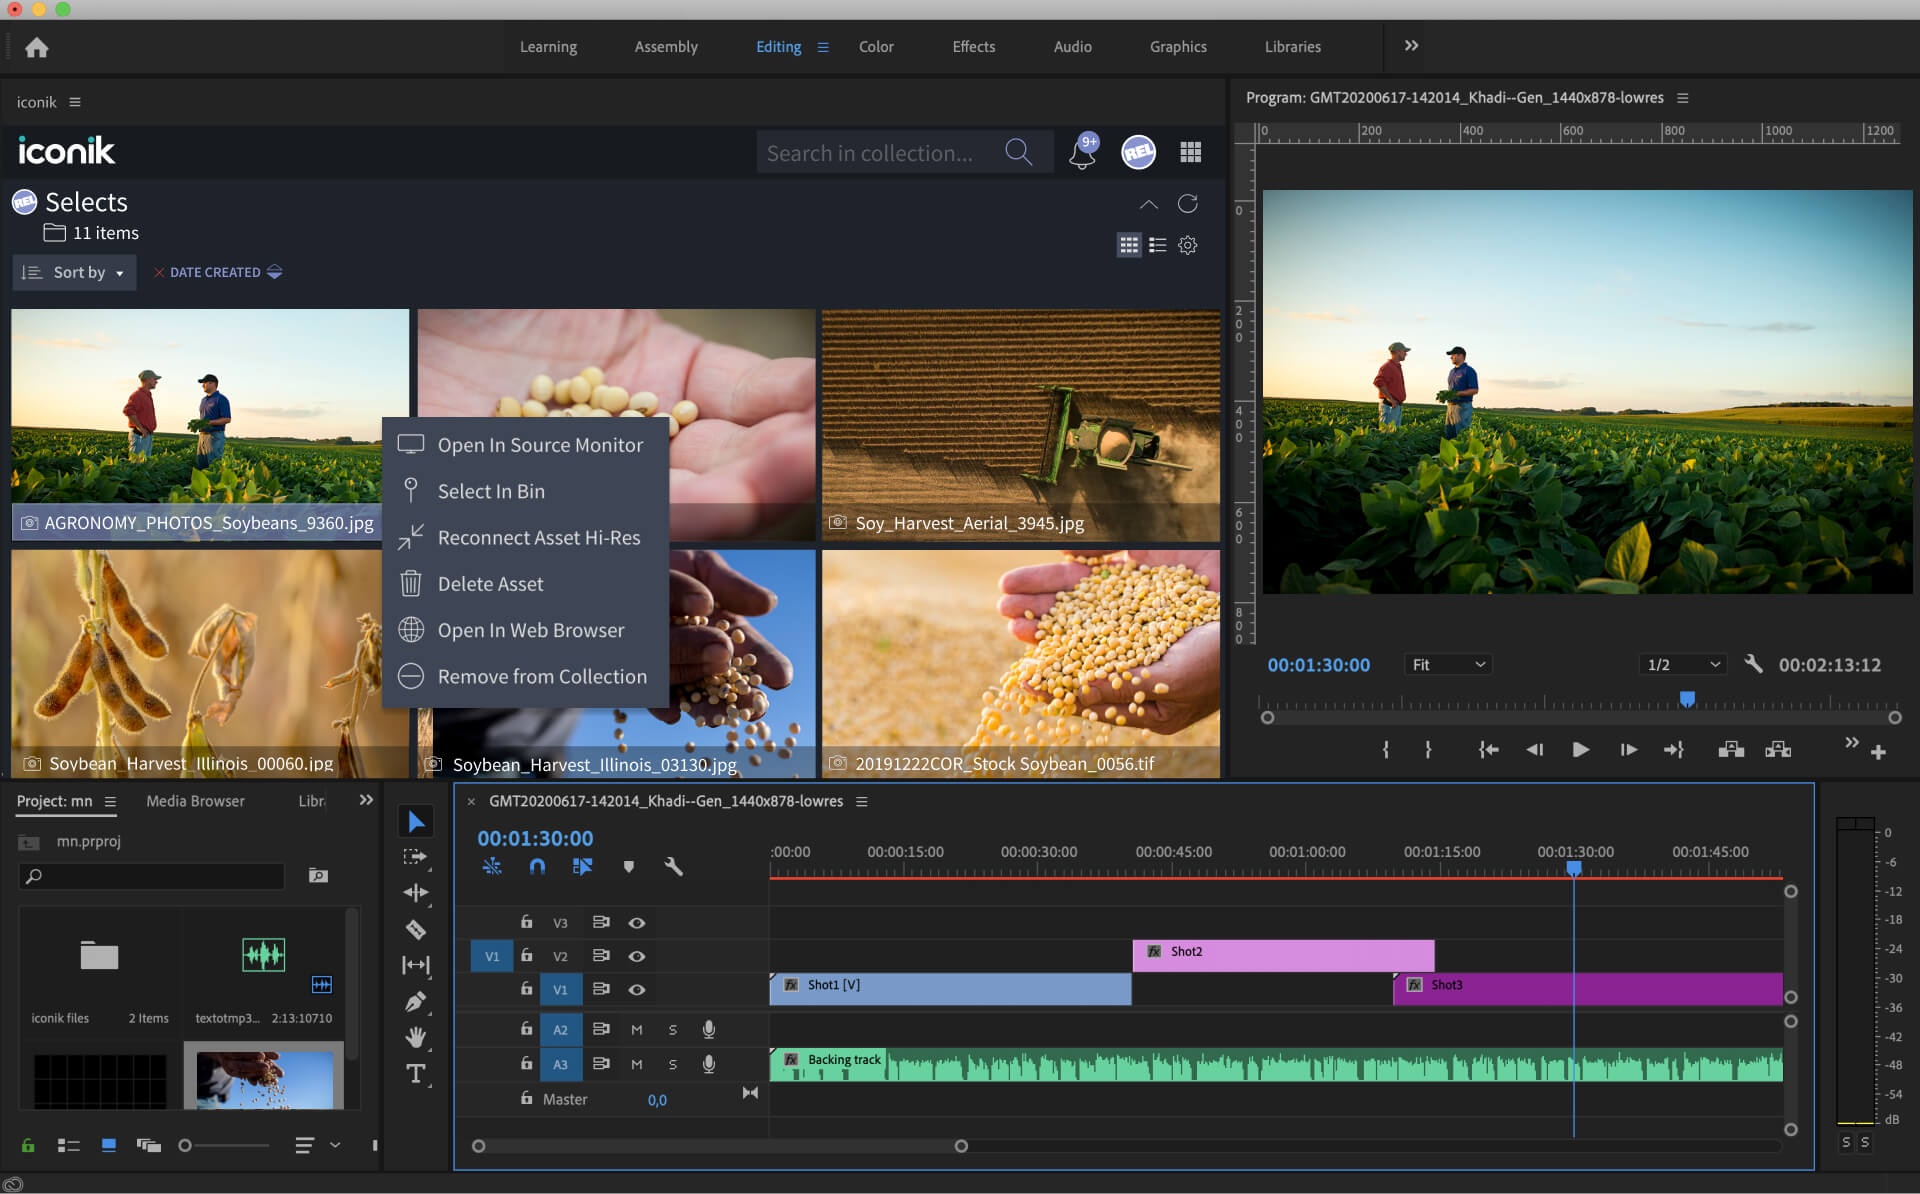 Remote video editing in Adobe Premiere Pro with the iconik panel